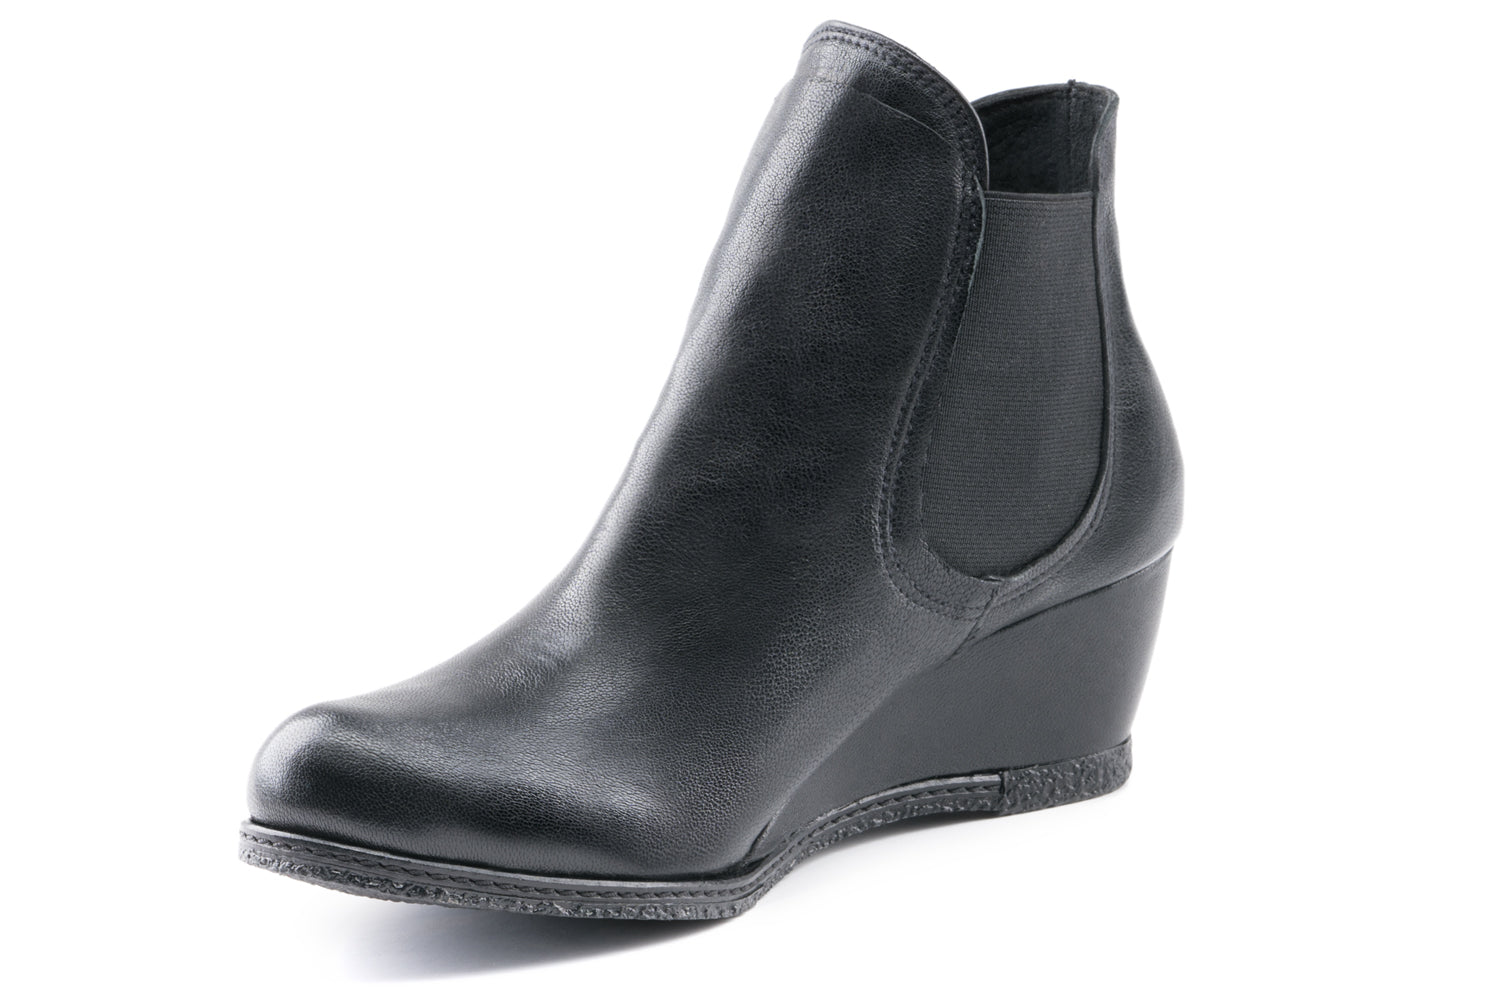 Mia Leather Wedge Chelsea boots - Black